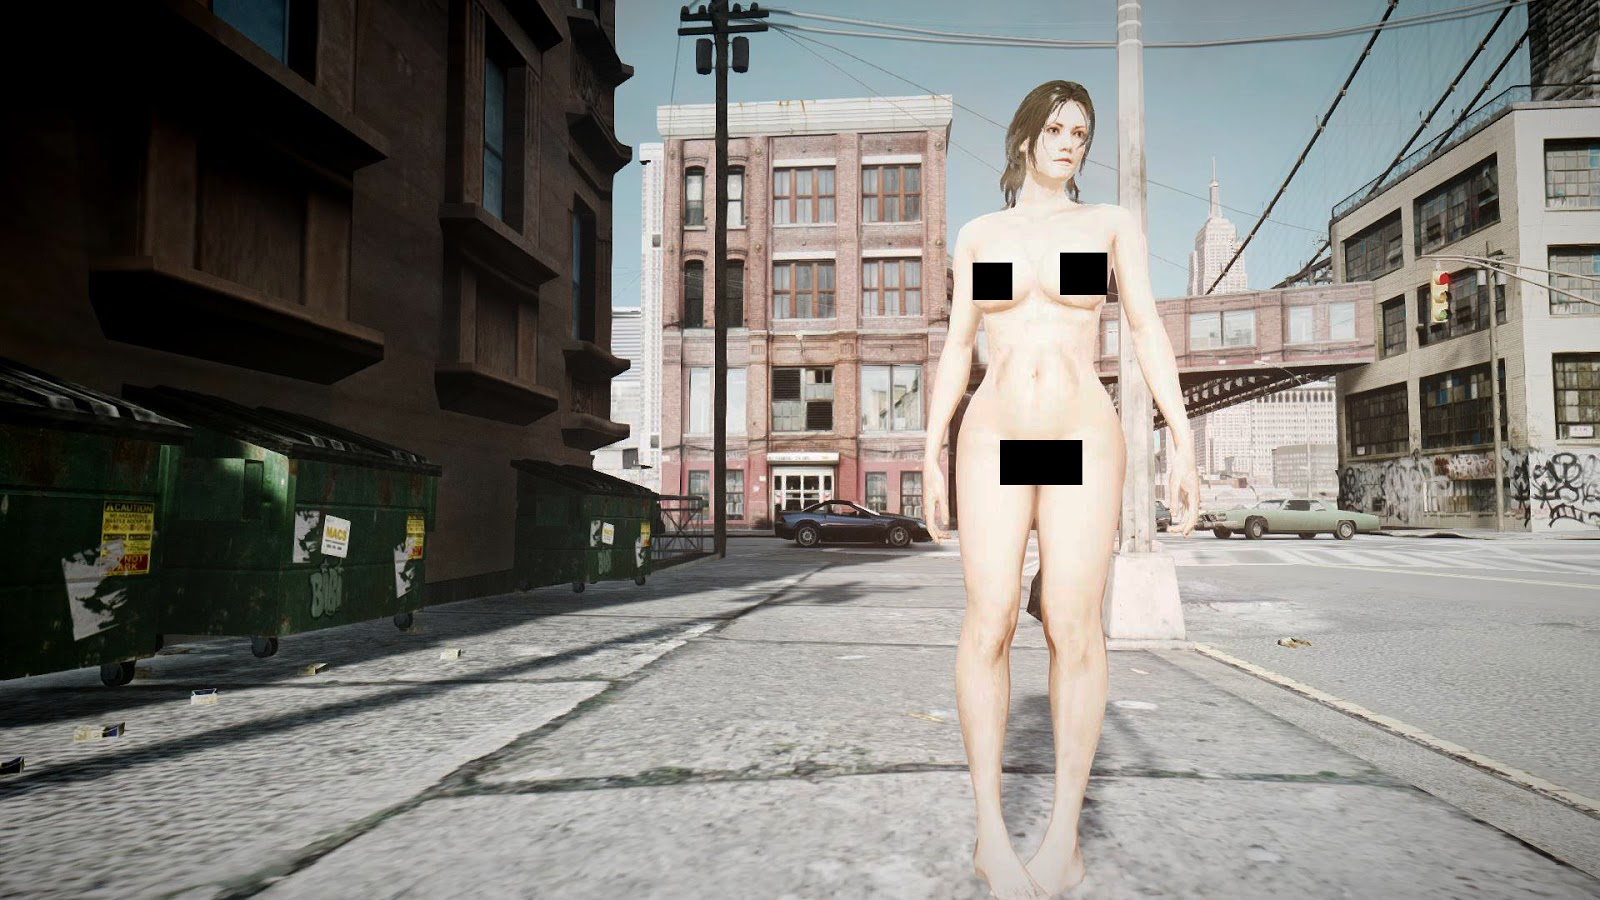 Gta iv nude patch porno images